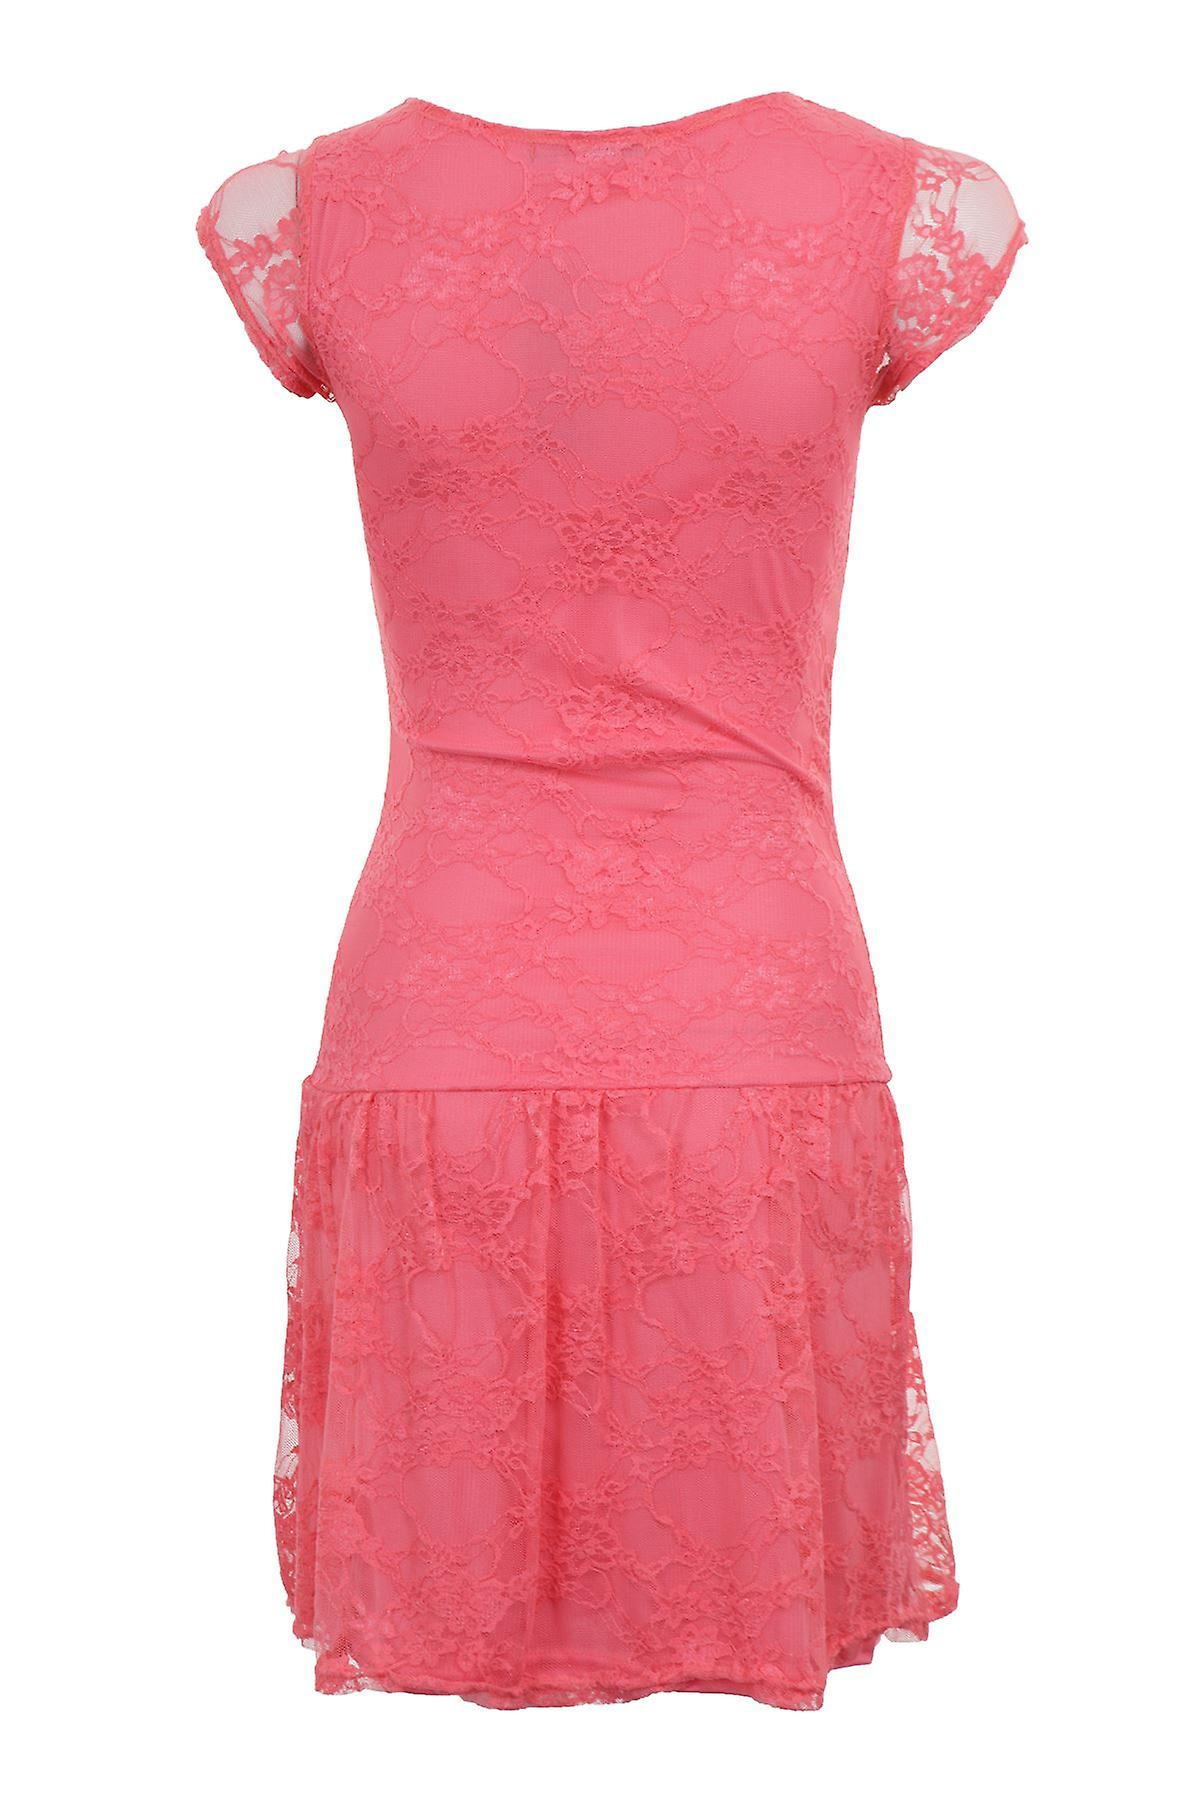 New Ladies Cap Sleeve Lined Floral Lace Mesh Women's Bodycon Dress